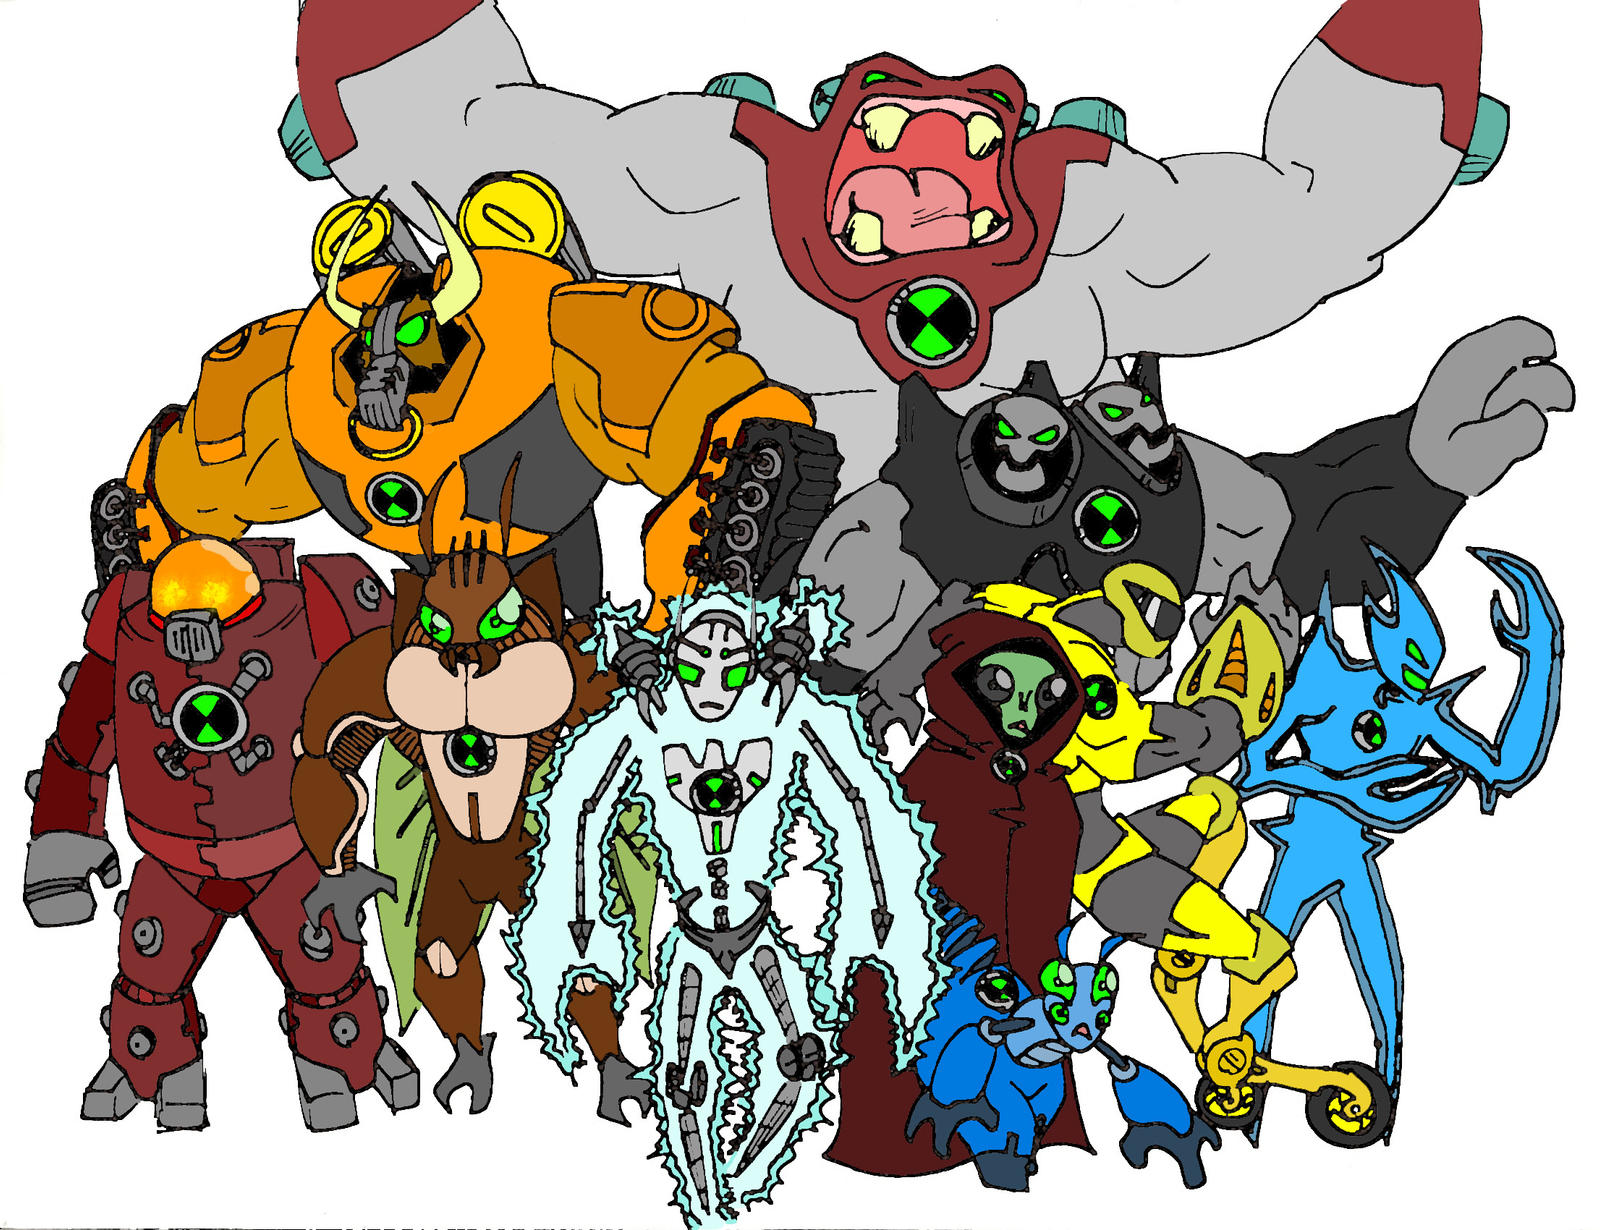 Ben 10 fan aliens favourites by deviantartistmax on deviantart brendanbass 9 2 another set of ben 10 aliens by bigafroman voltagebd Image collections